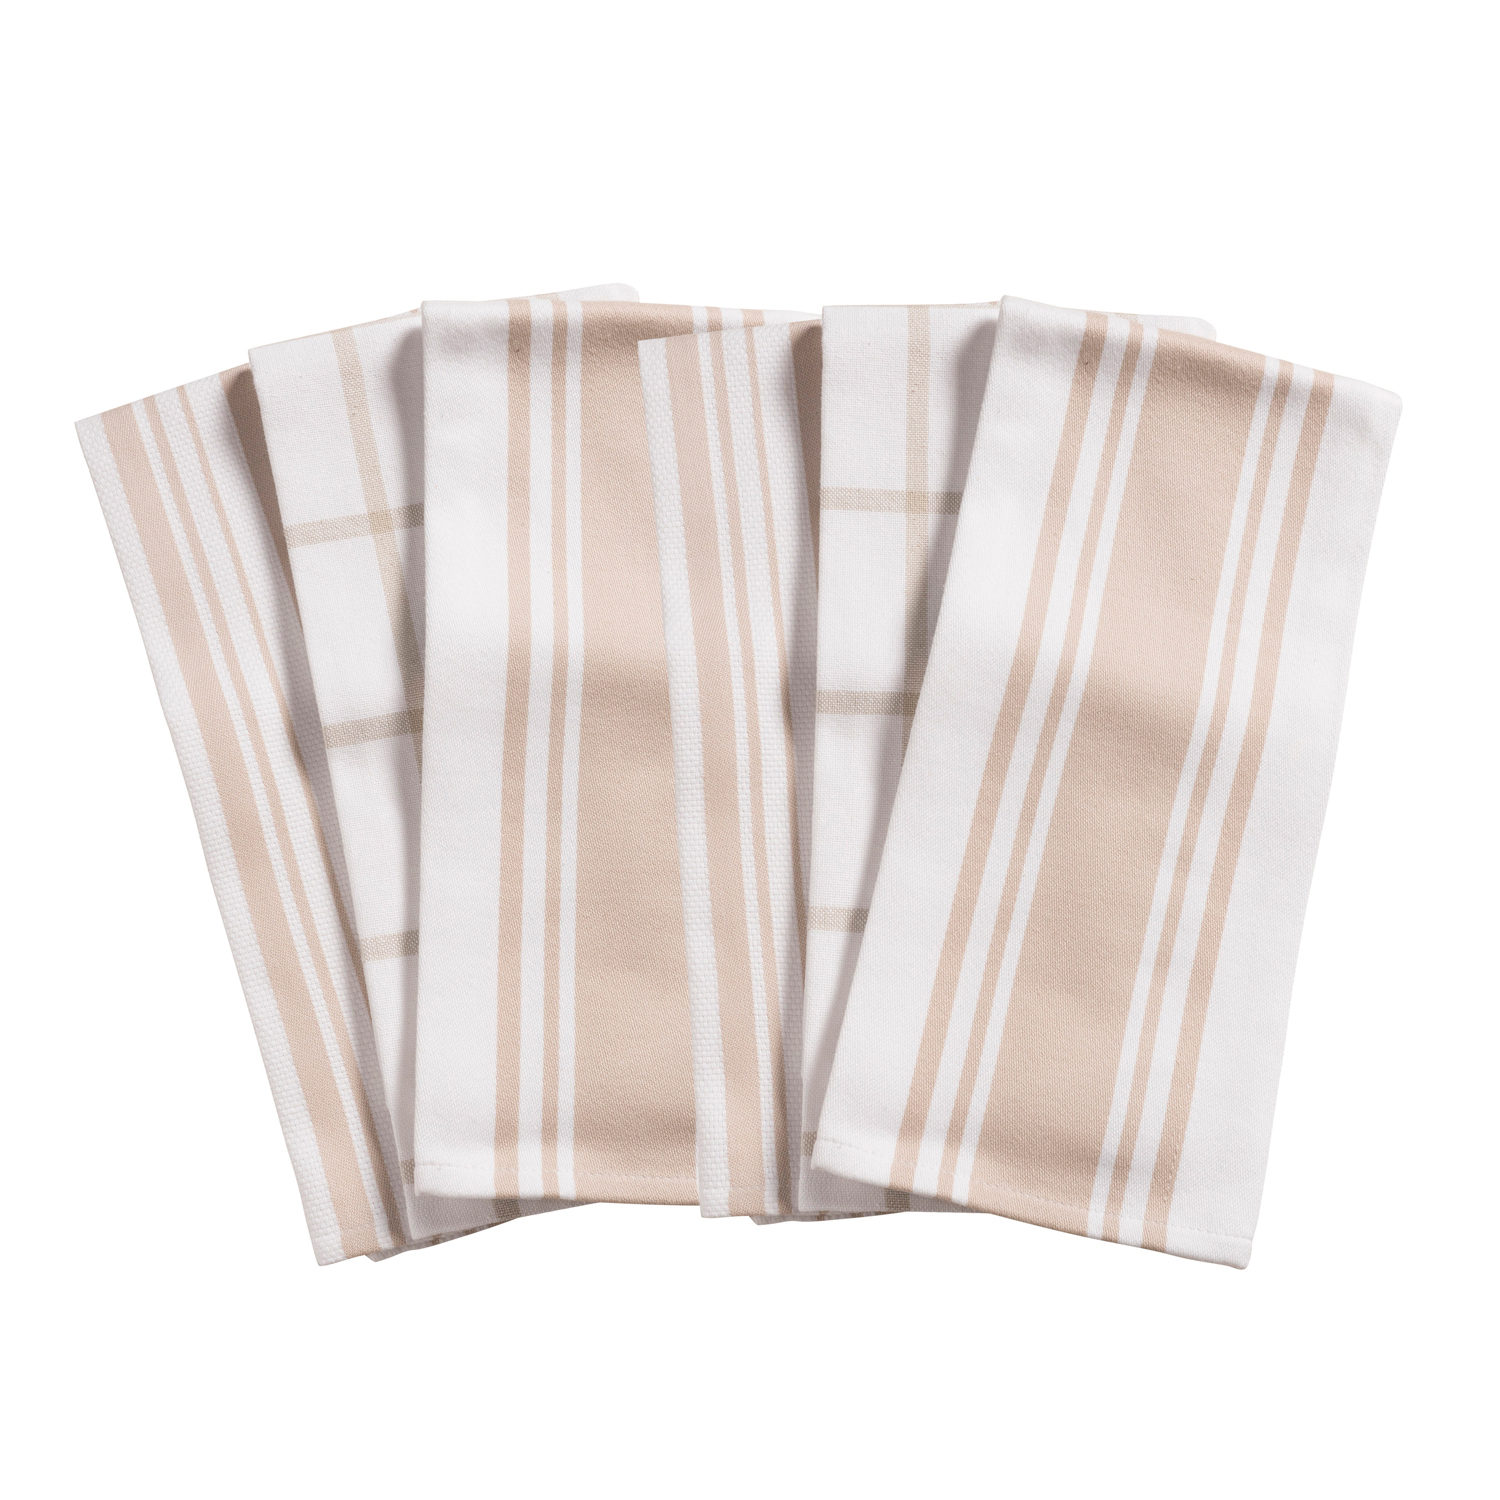 Taupe All Purpose Kitchen Towels Set of 6